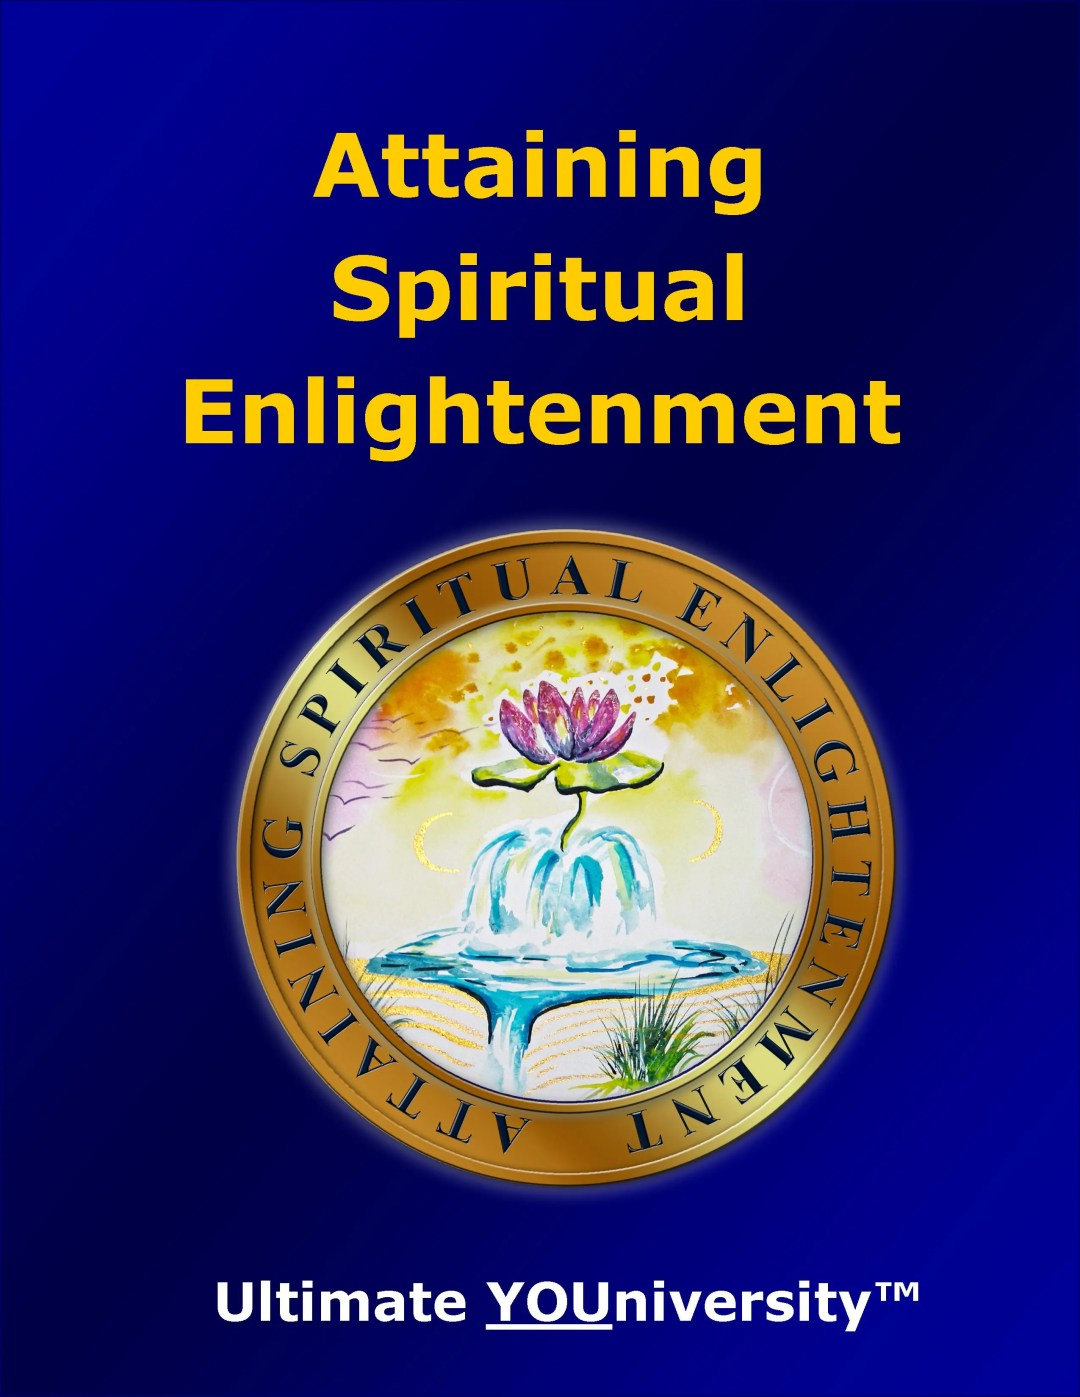 Attaining Spiritual Enlightenment, one of the 14 Categories